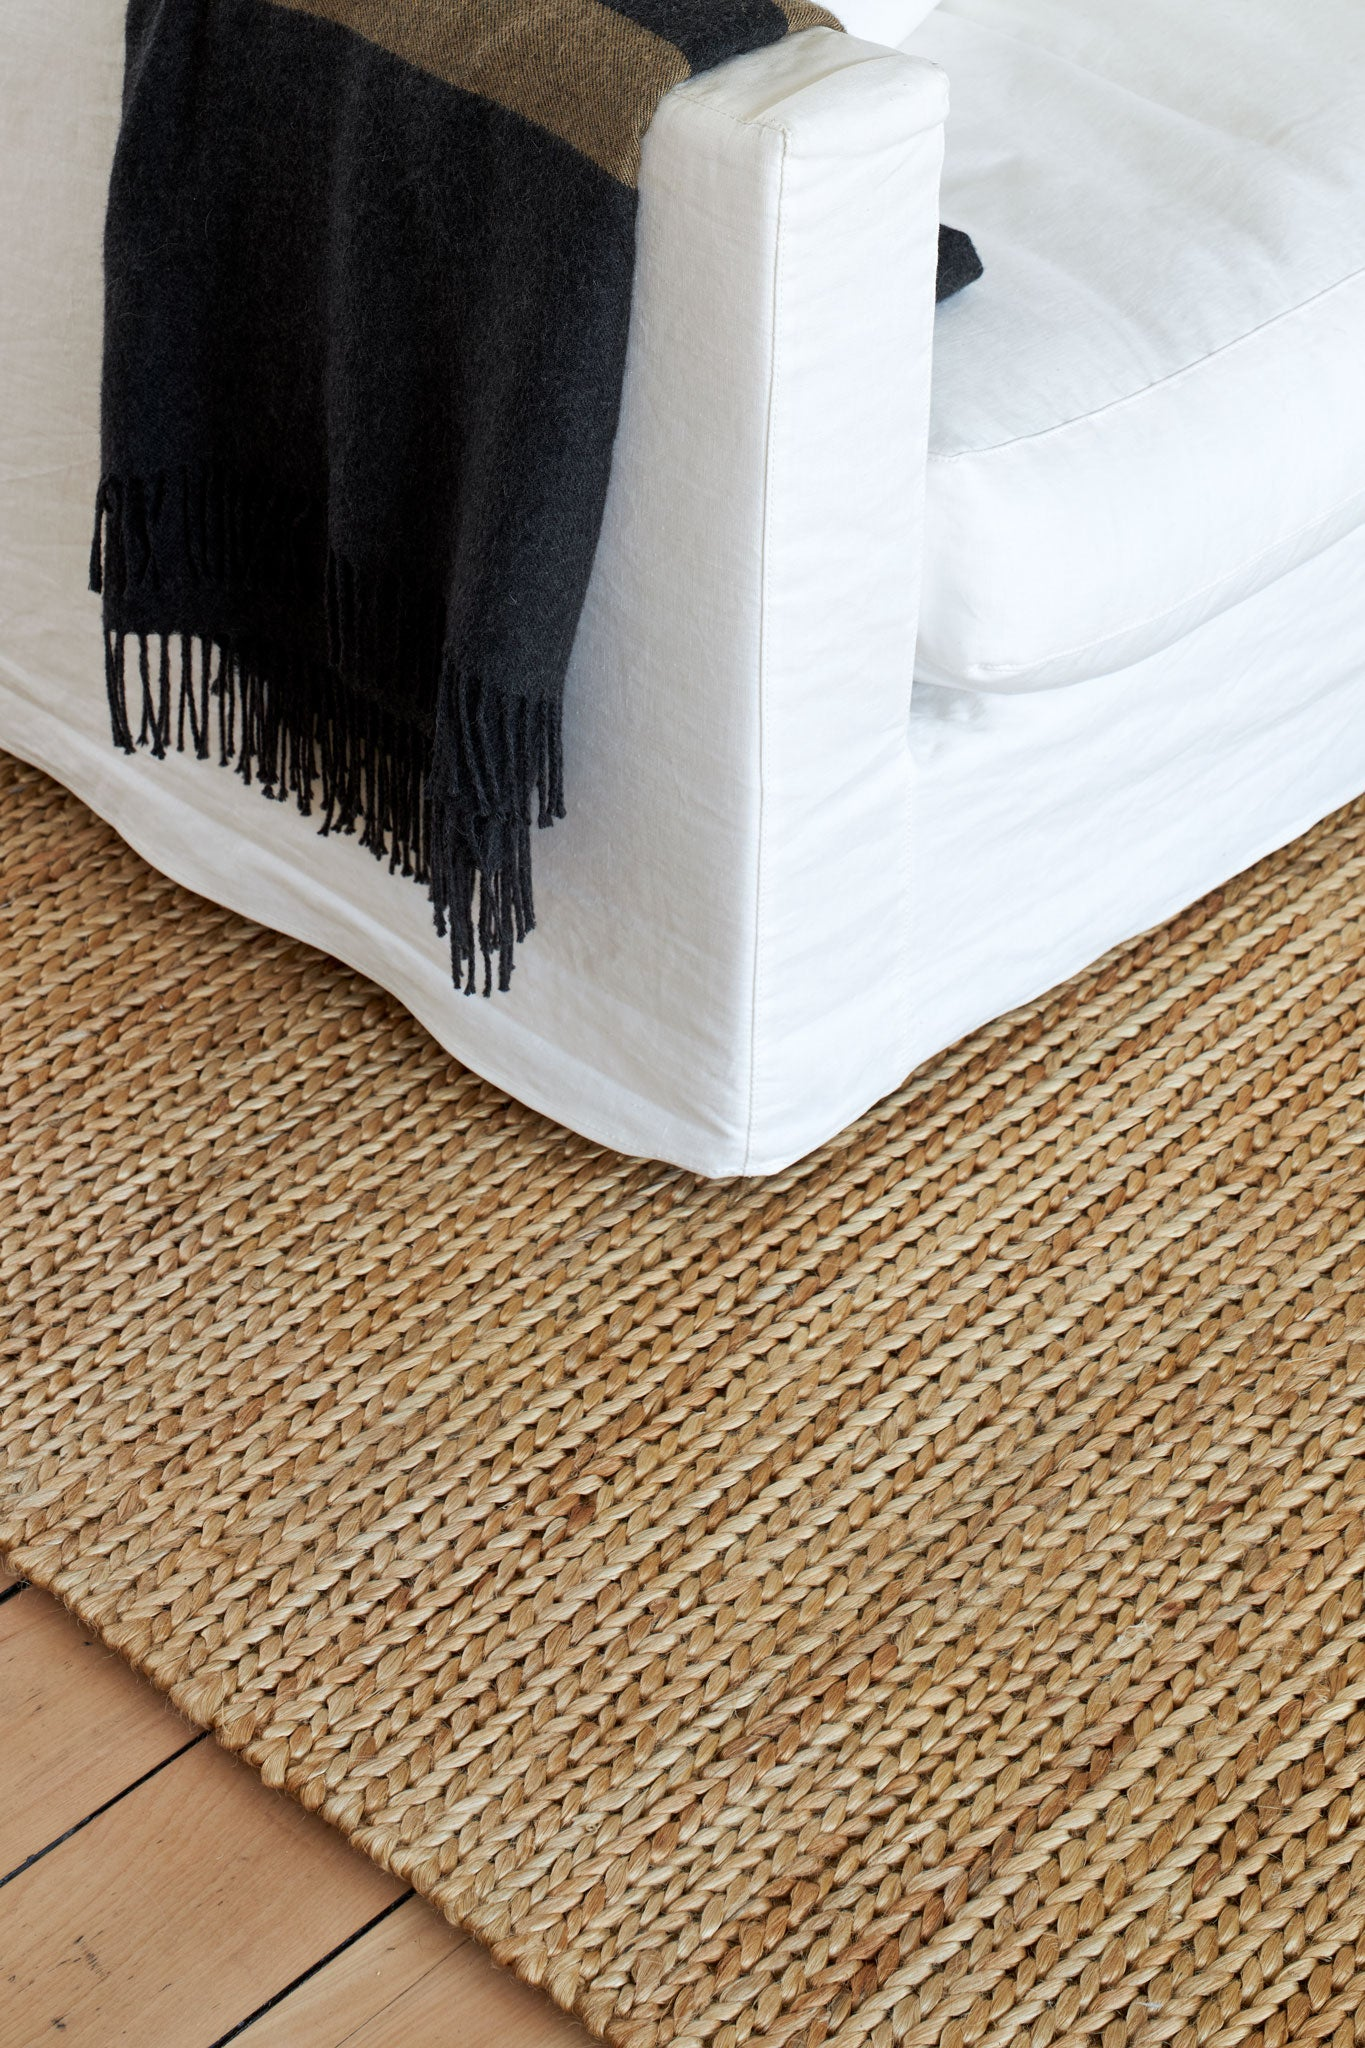 Nodi Handmade Rugs Pony Braid - Midnight Grey, sisal, jute rugs, jute rugs nz, sisal rugs nz, natural rugs, designer rugs, woollen rugs